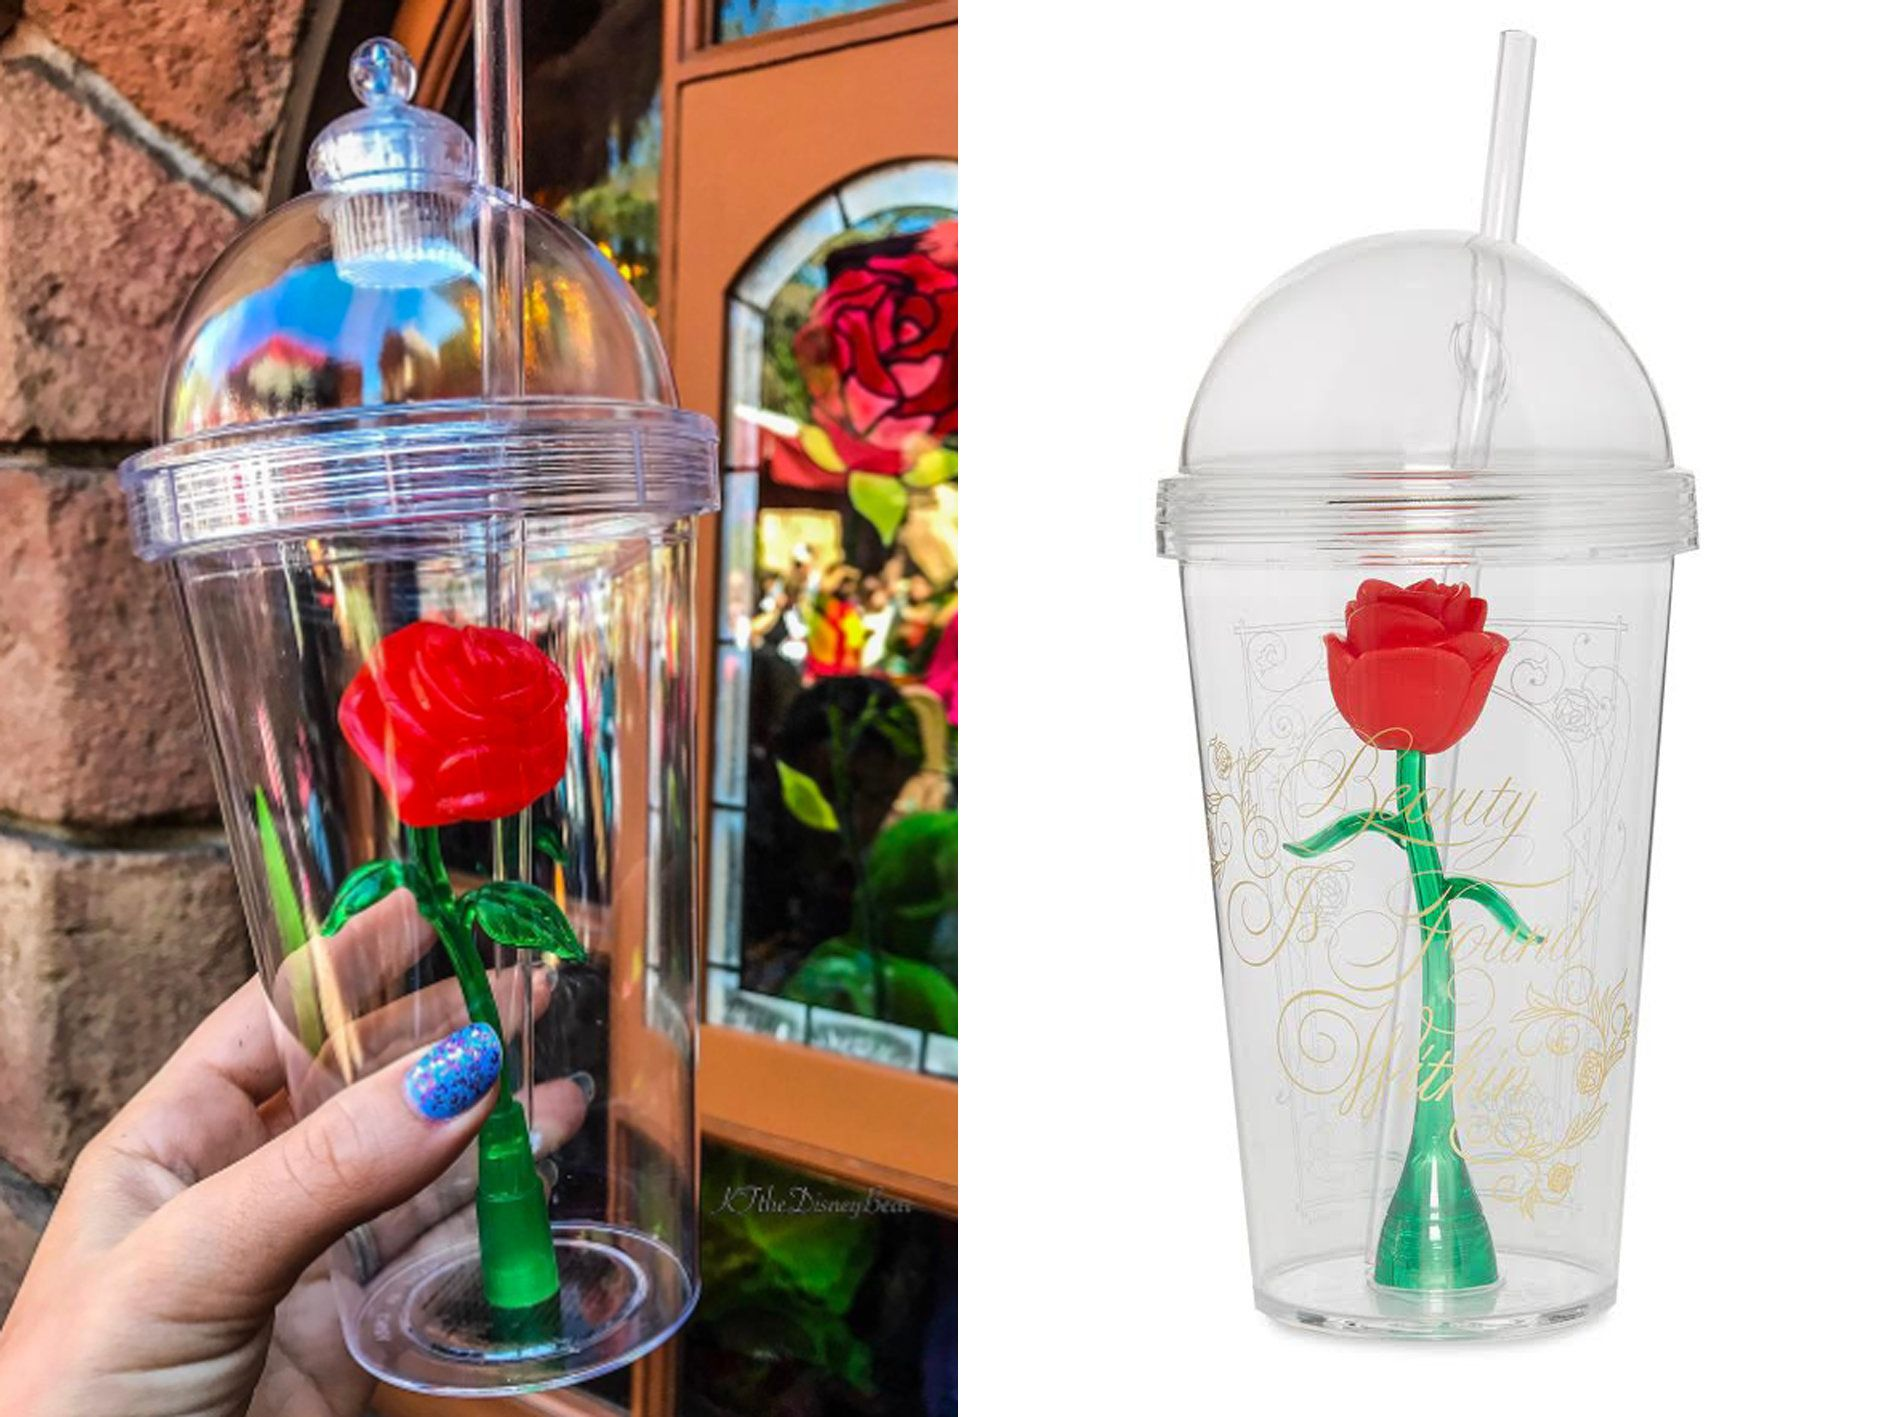 Primark Sells £5 Version Of Disneyland's Coveted Enchanted Rose